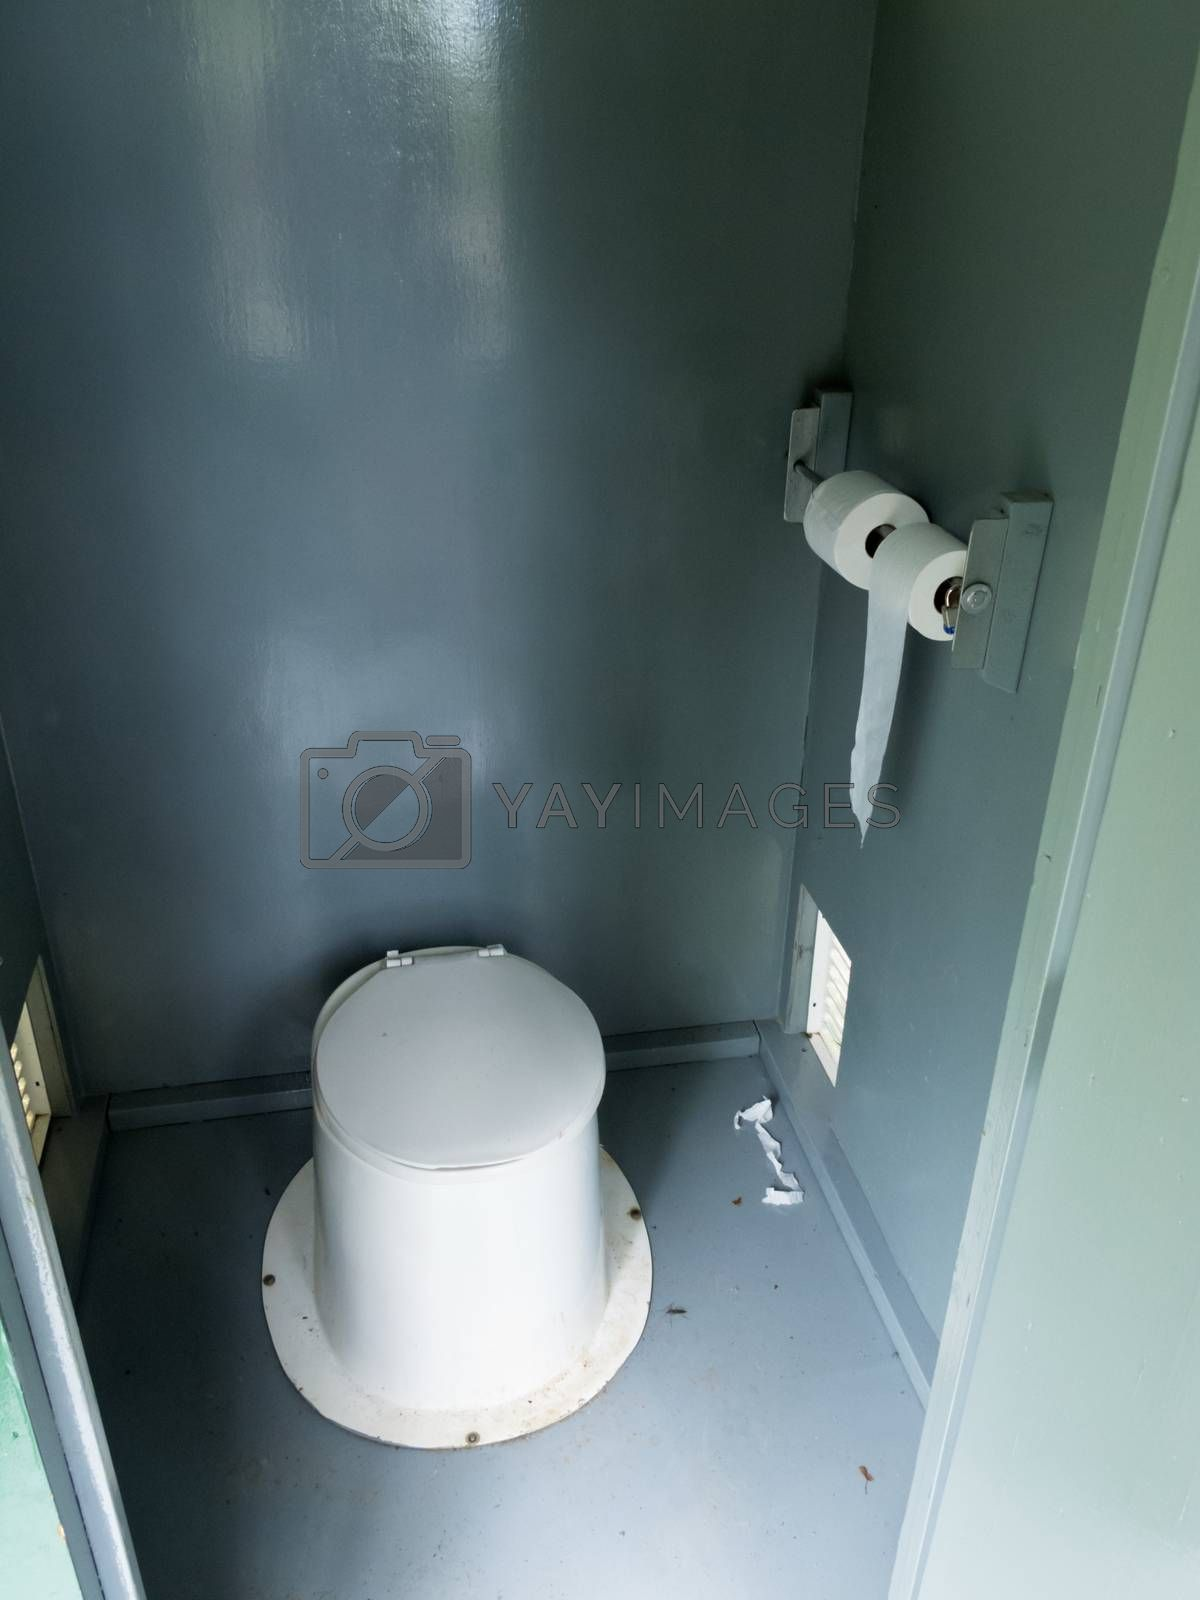 Camp ground latrine outhouse inside pit toilet by PiLens